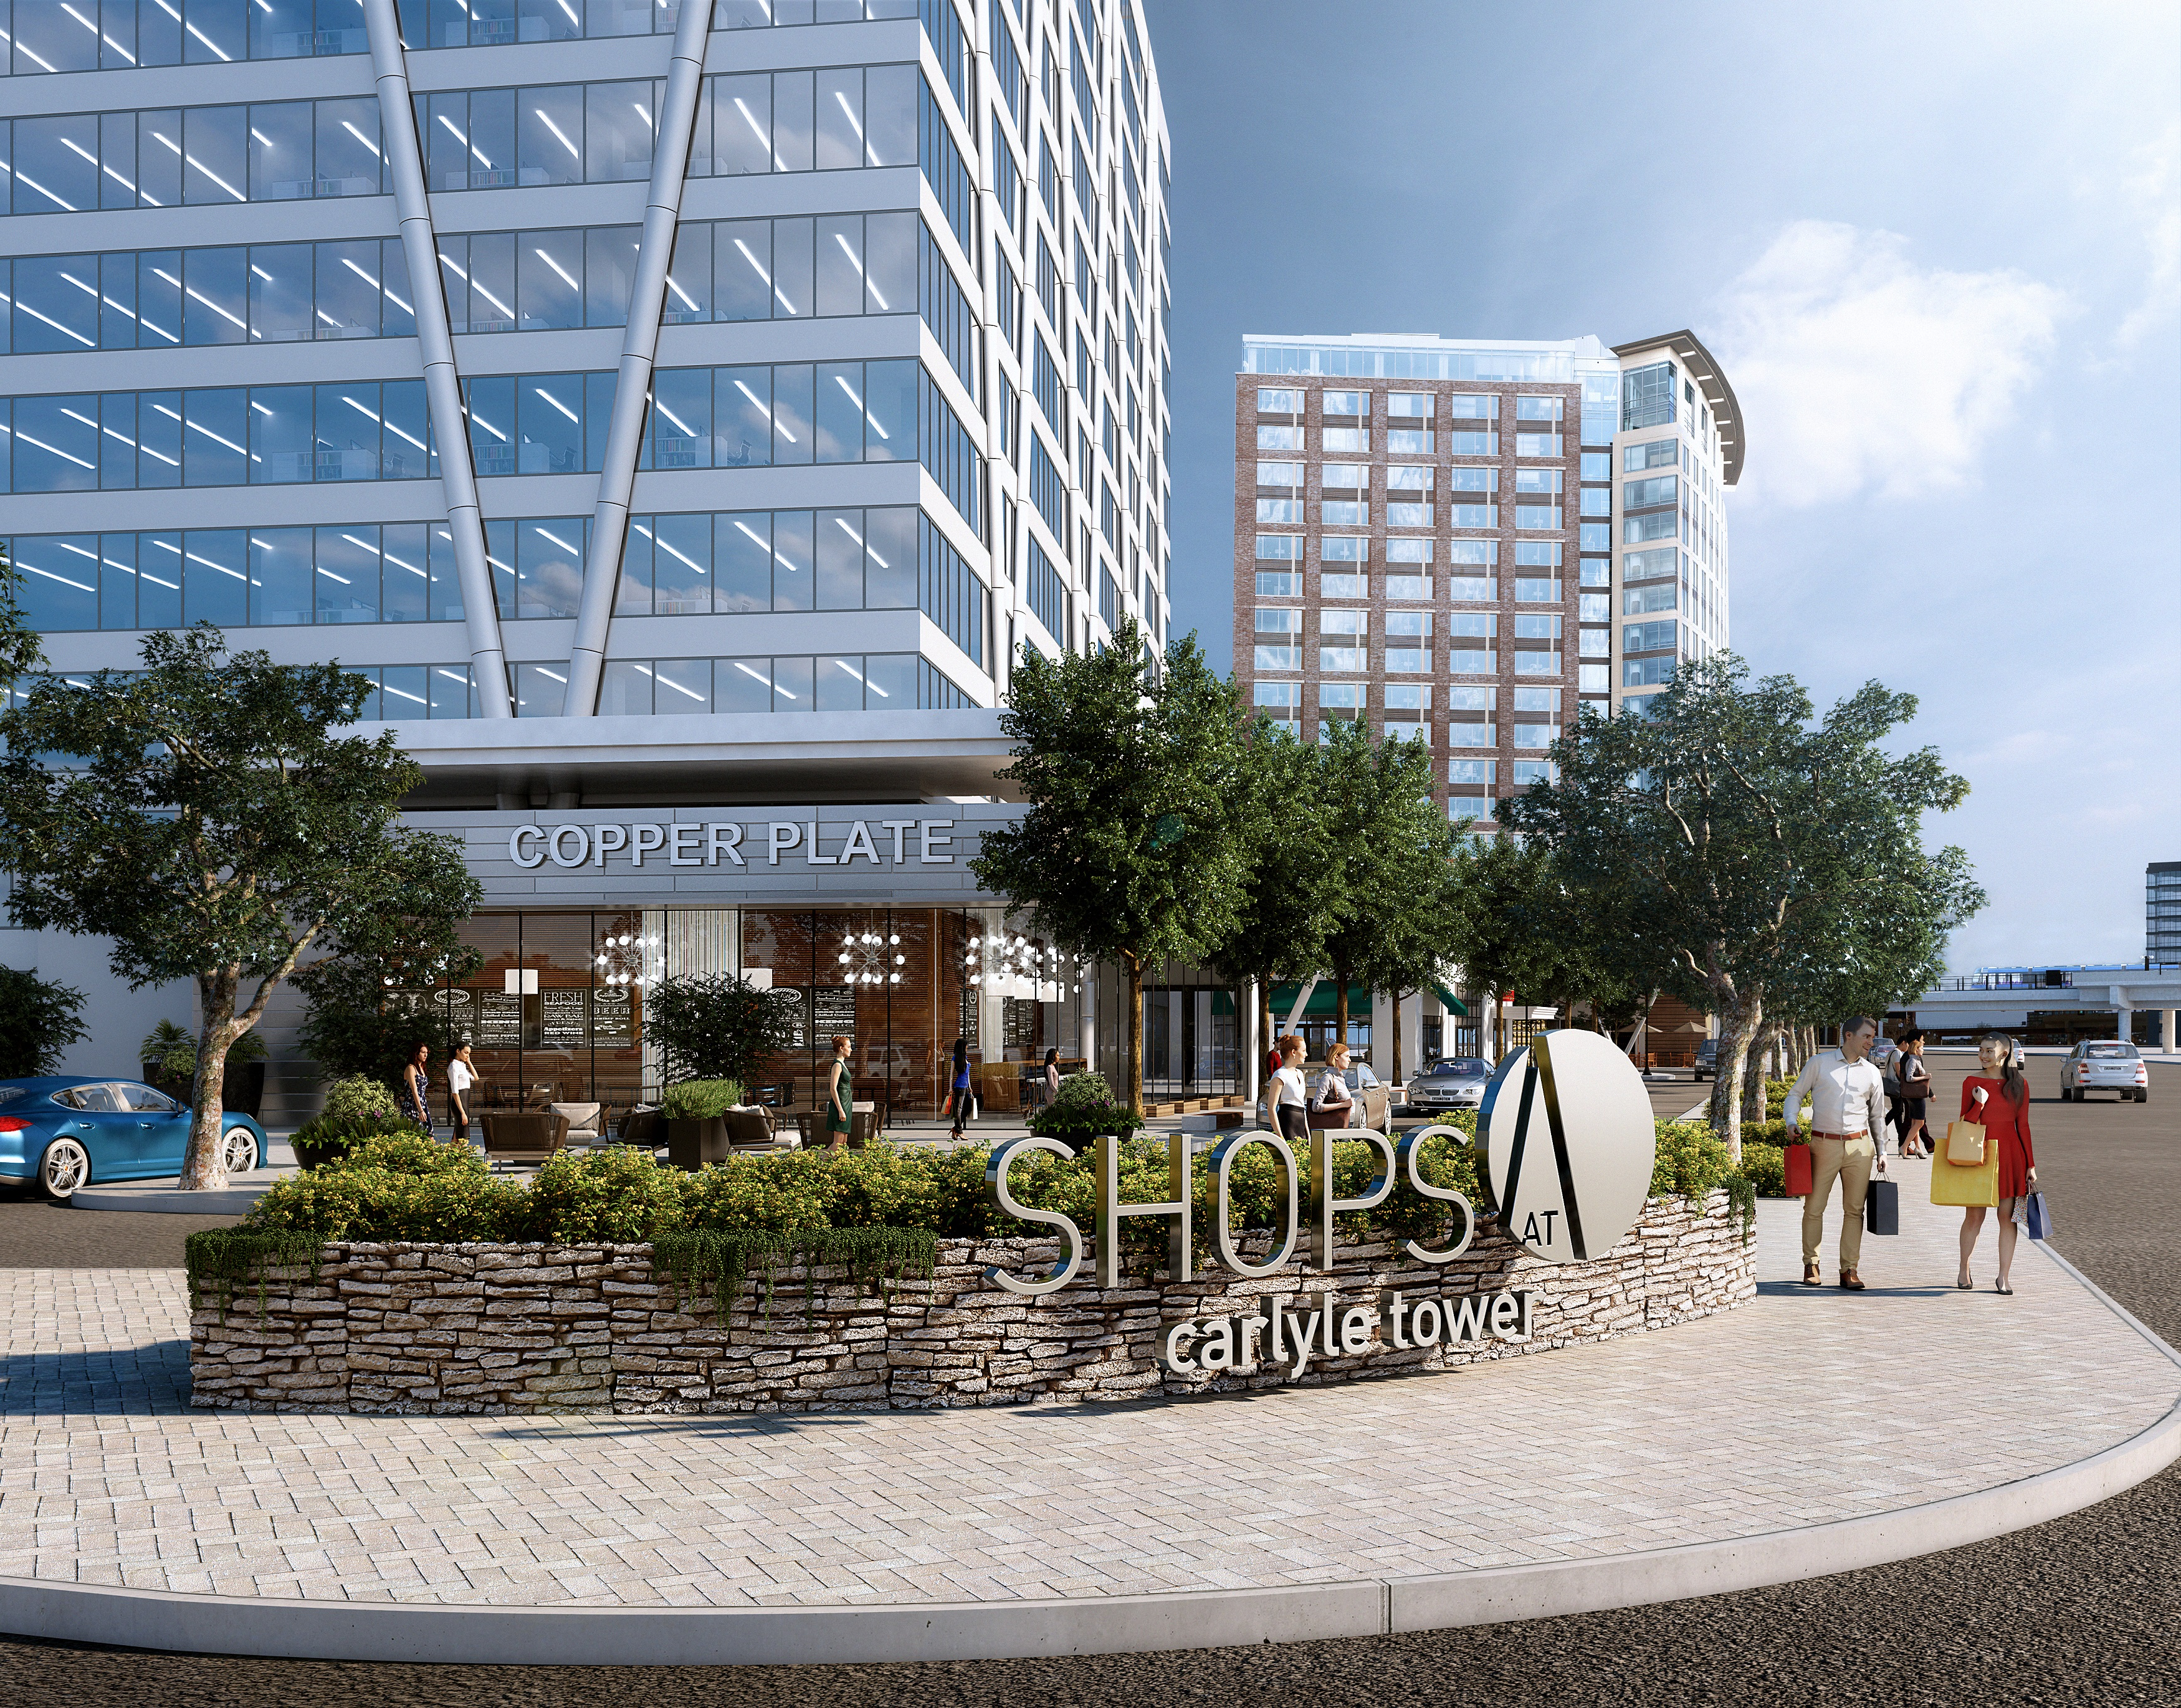 Northpoint_CarlyleTower_GroundRetail_091317 sm